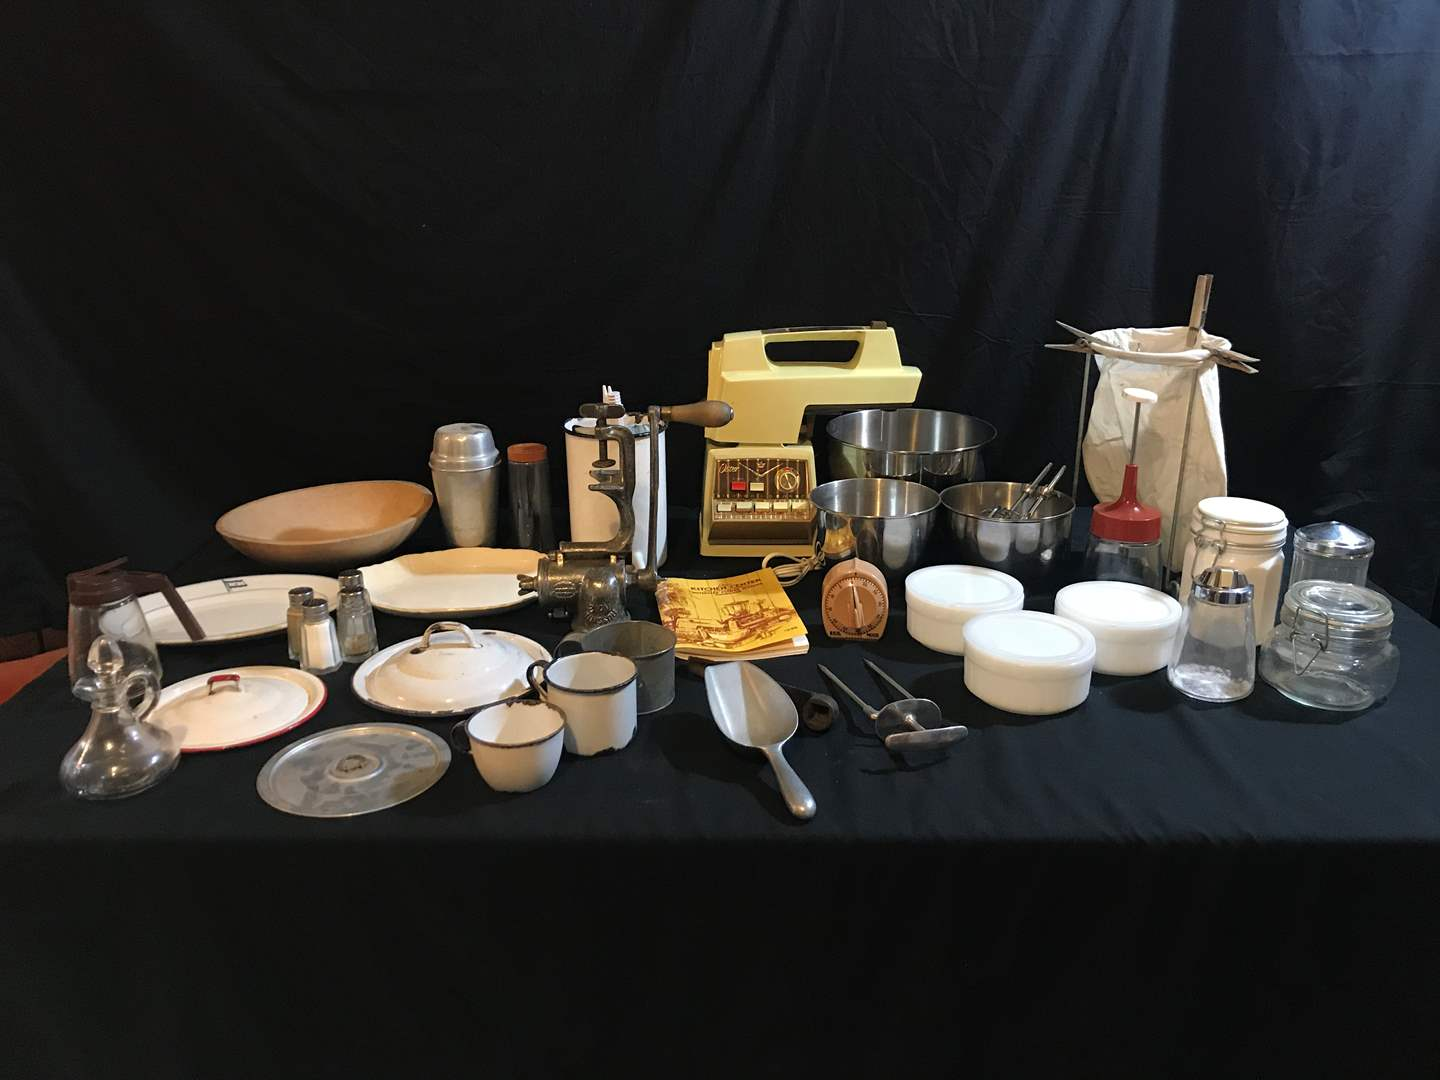 Lot # 97 - Oster Blender w/Small Bowls, Butter Dishes, Meat Grinder, Misc. Lids & More.. (main image)